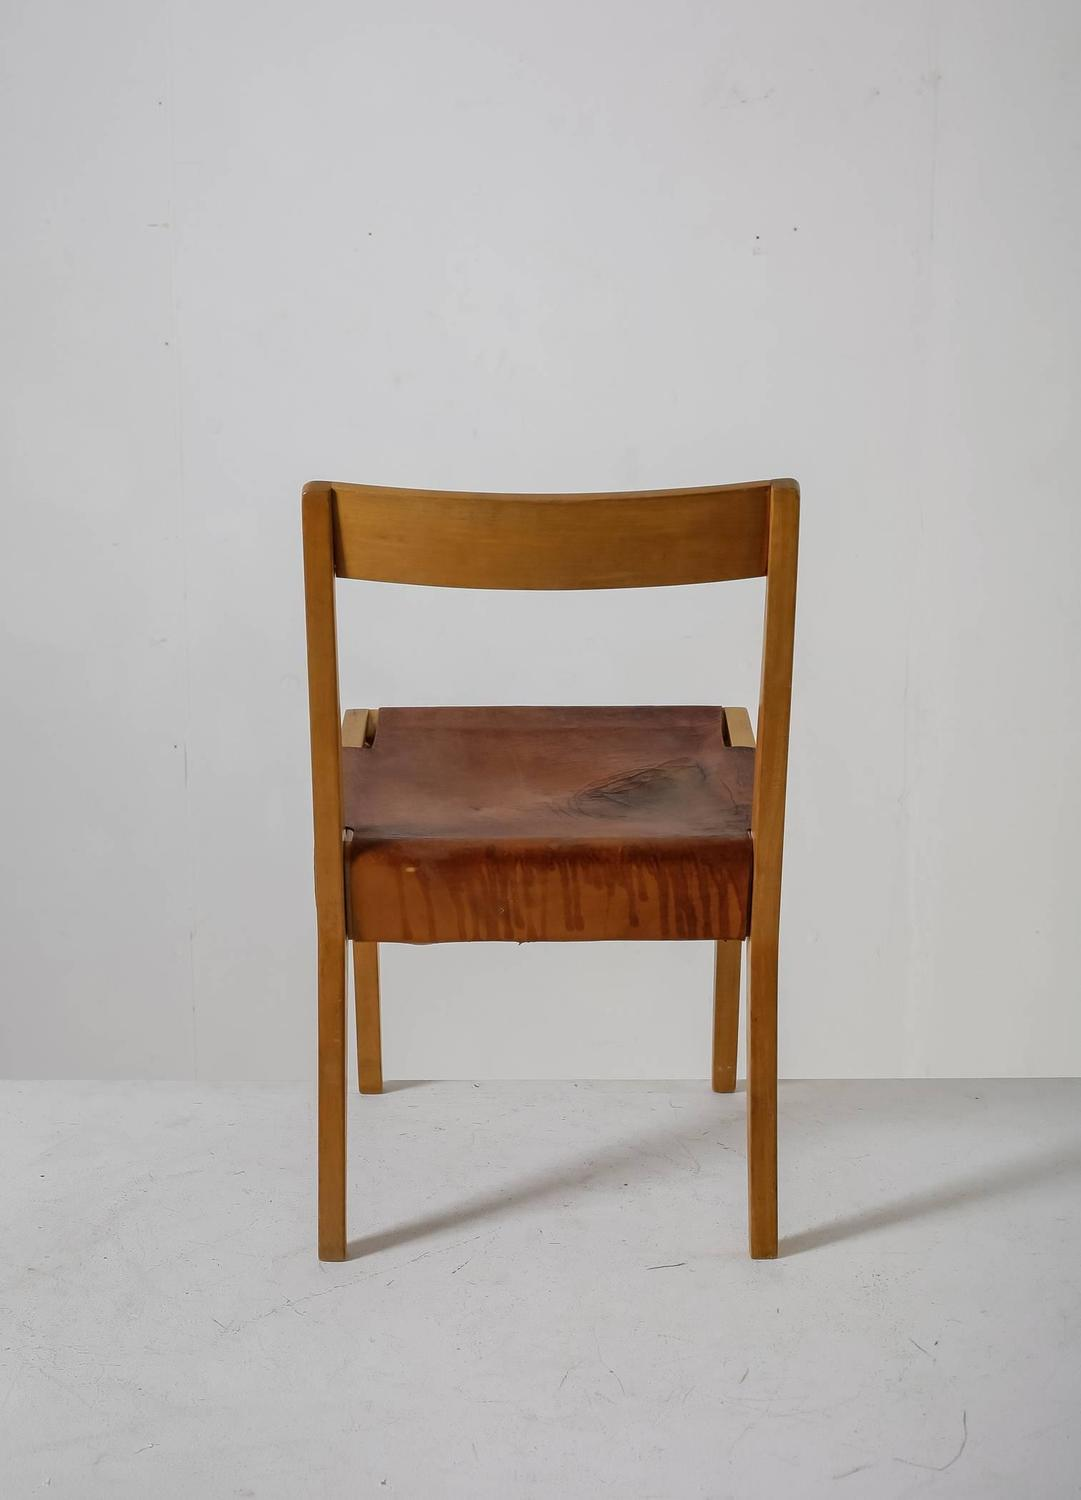 Jens risom early knoll associates chair usa 1940s for for Knoll and associates